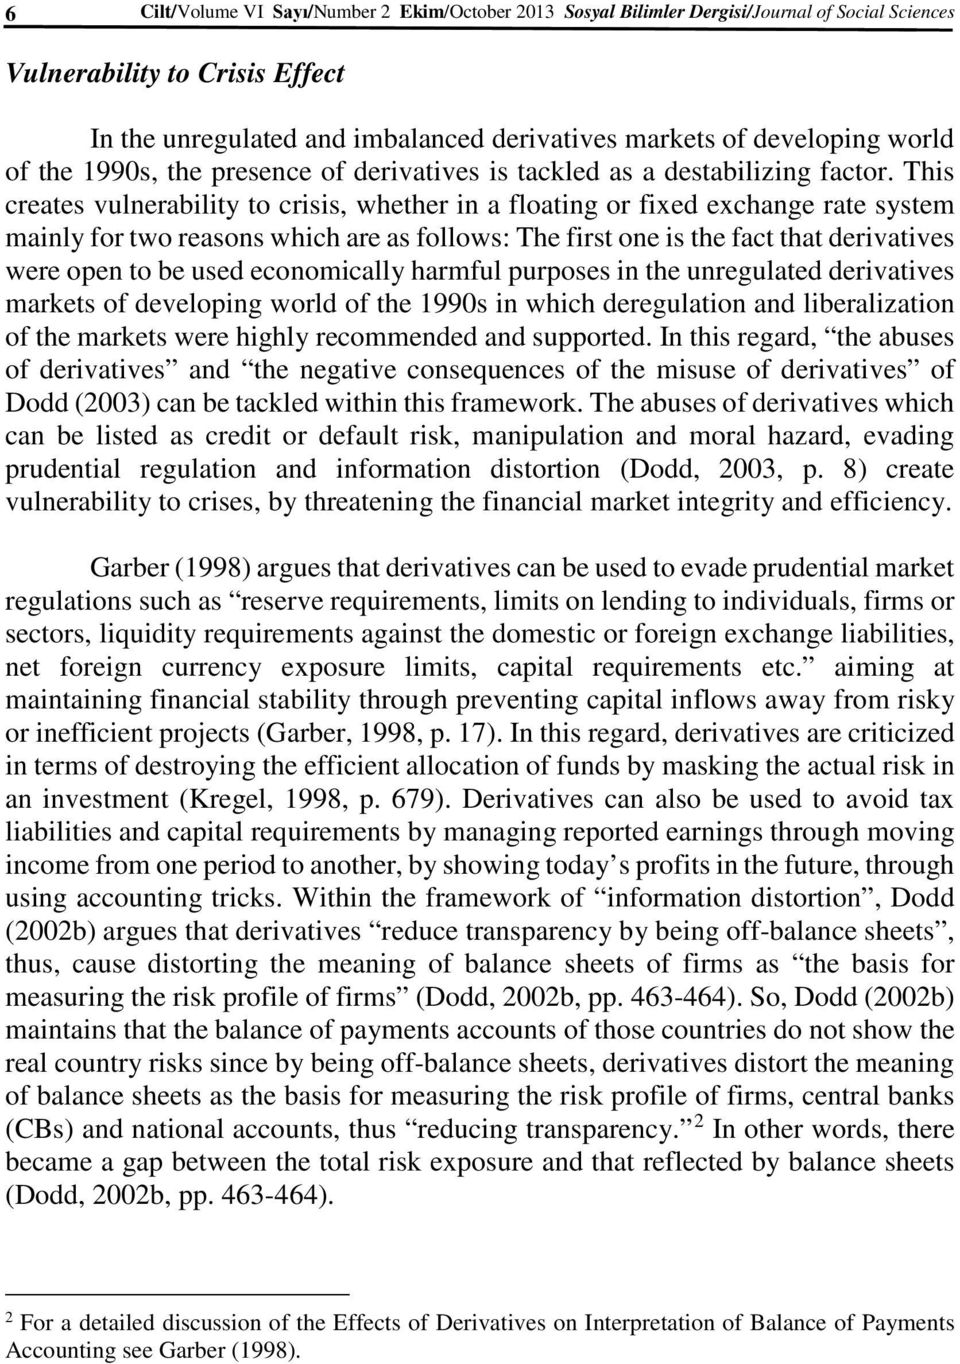 This creates vulnerability to crisis, whether in a floating or fixed exchange rate system mainly for two reasons which are as follows: The first one is the fact that derivatives were open to be used